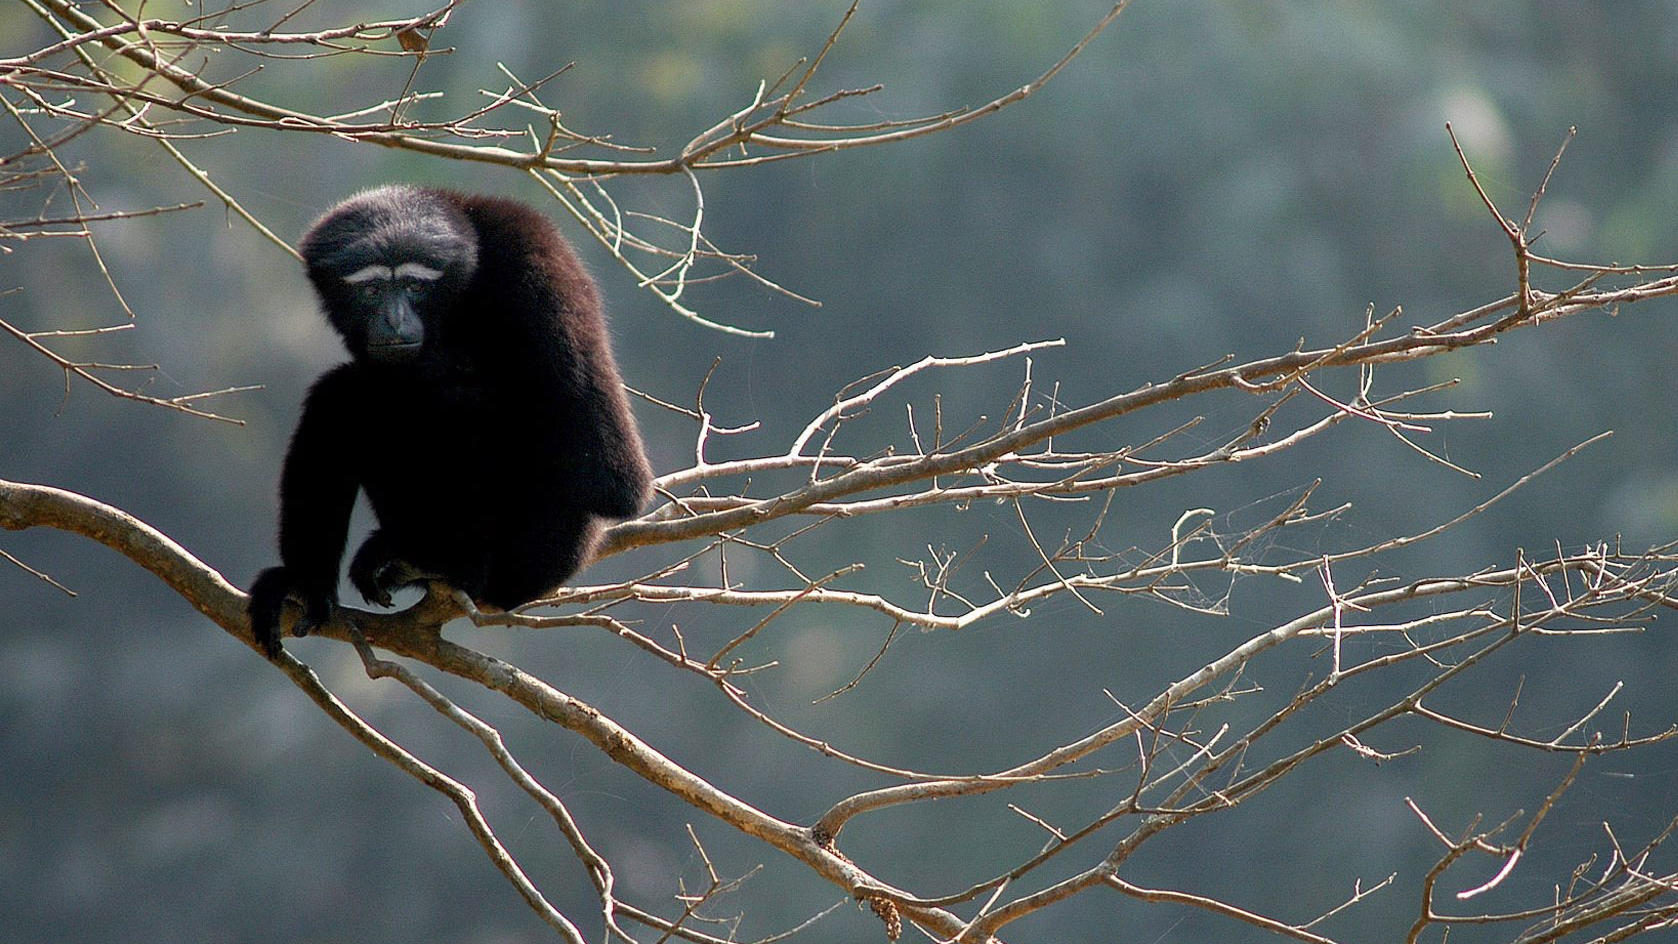 New species of gibbons named after a Star Wars character